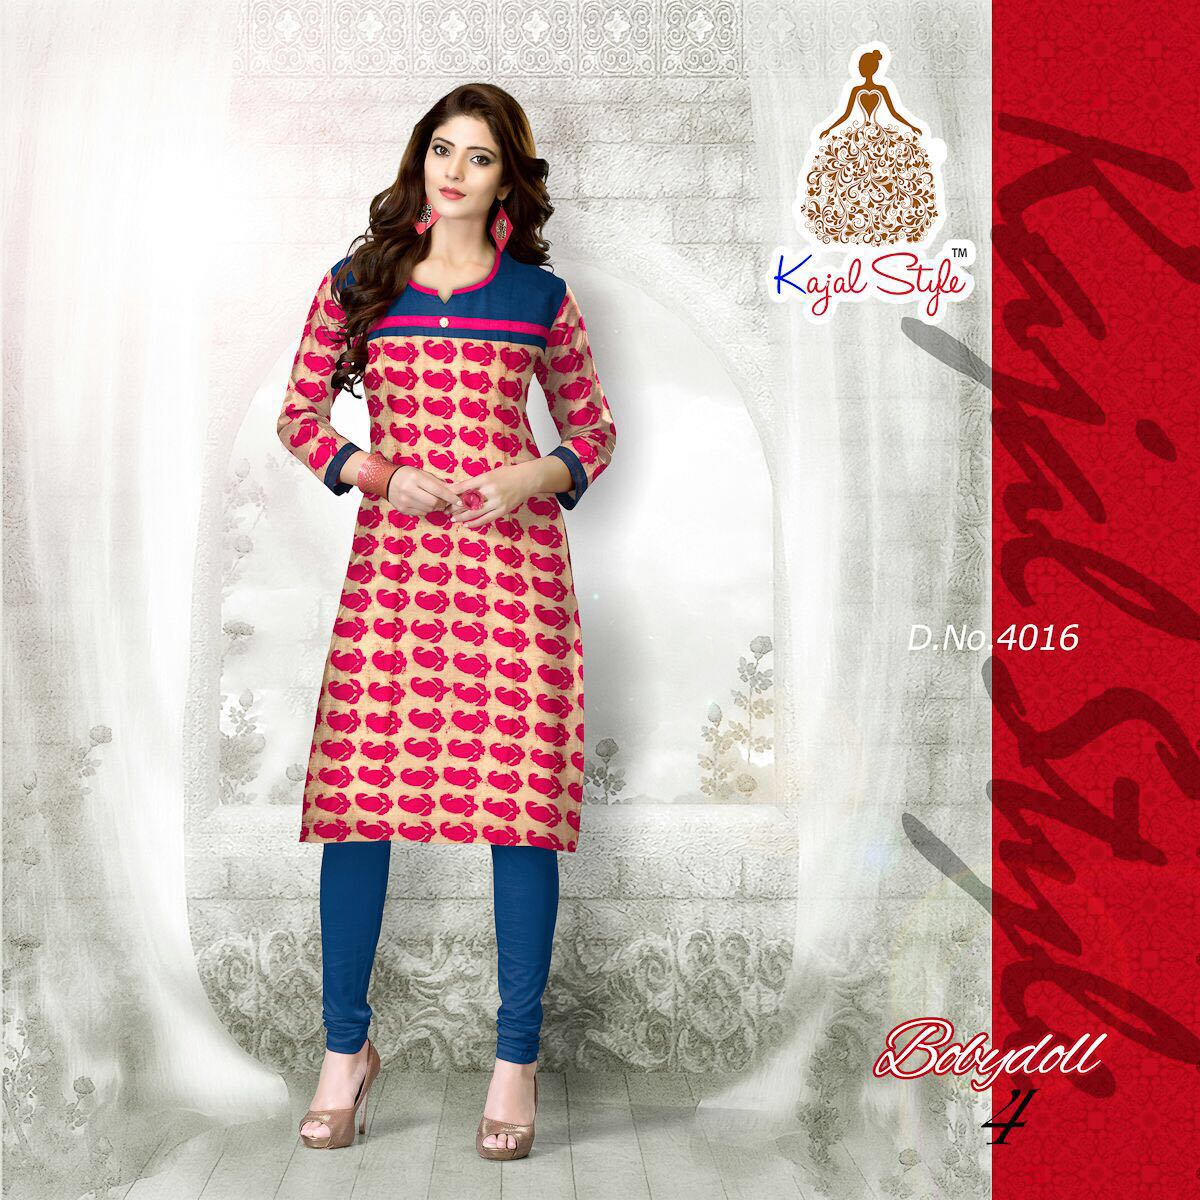 Kajal Style Baby Doll Vol 4 2 Jp Textiles Fashion Store For